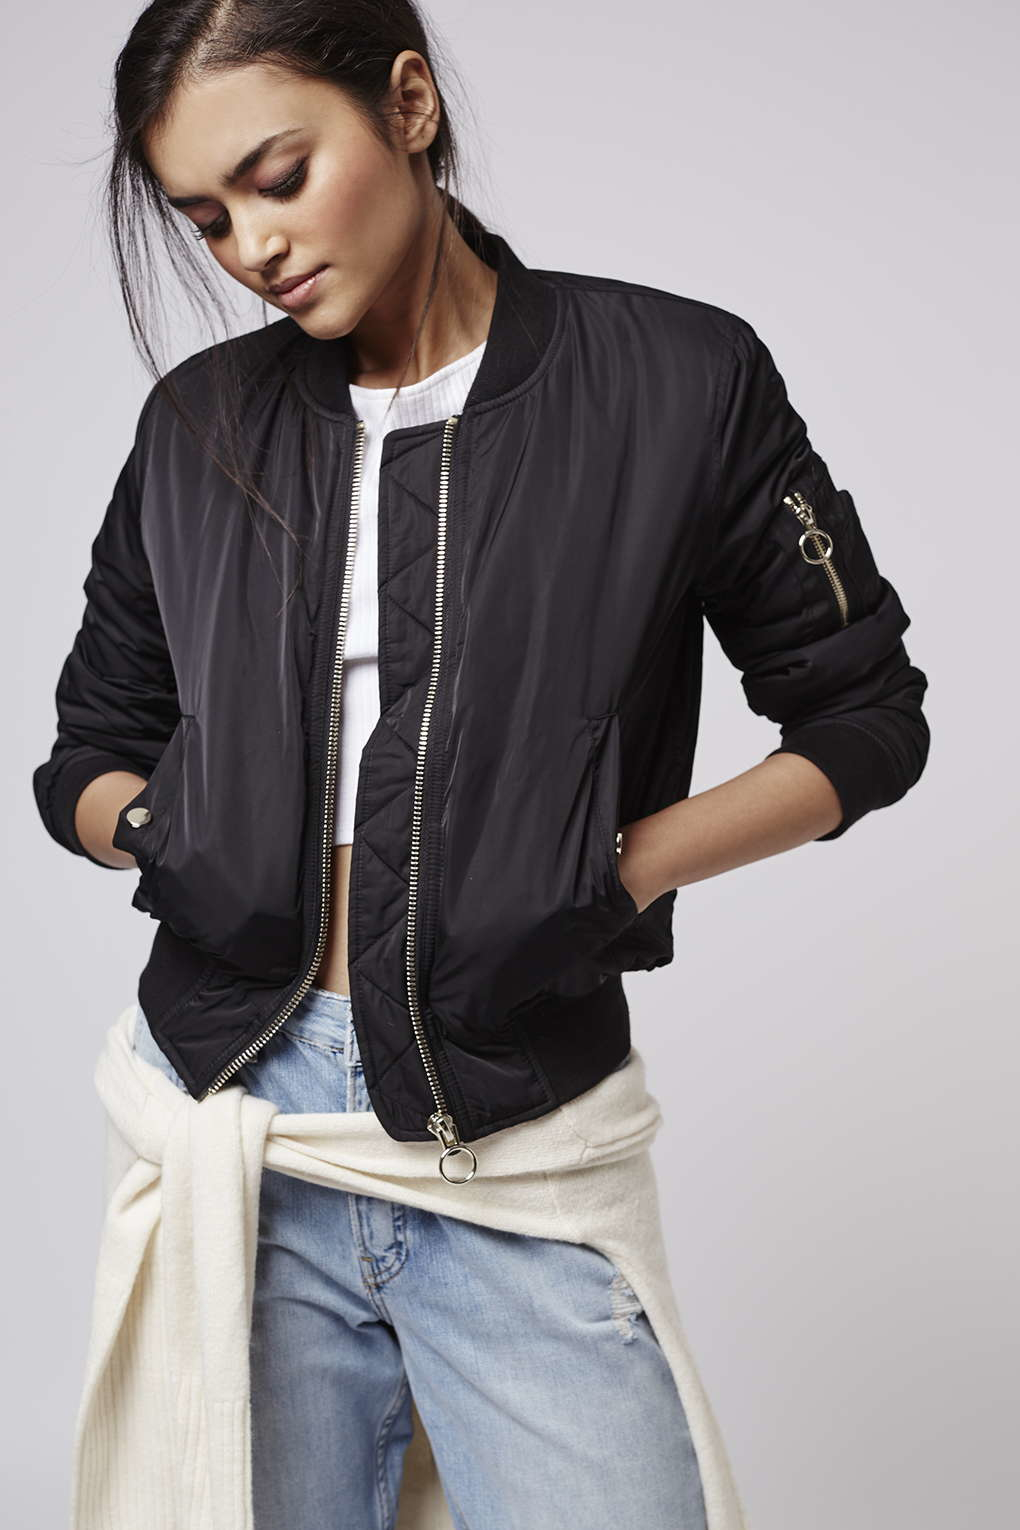 Topshop Petite Faux Fur Lined Bomber Jacket in Black | Lyst